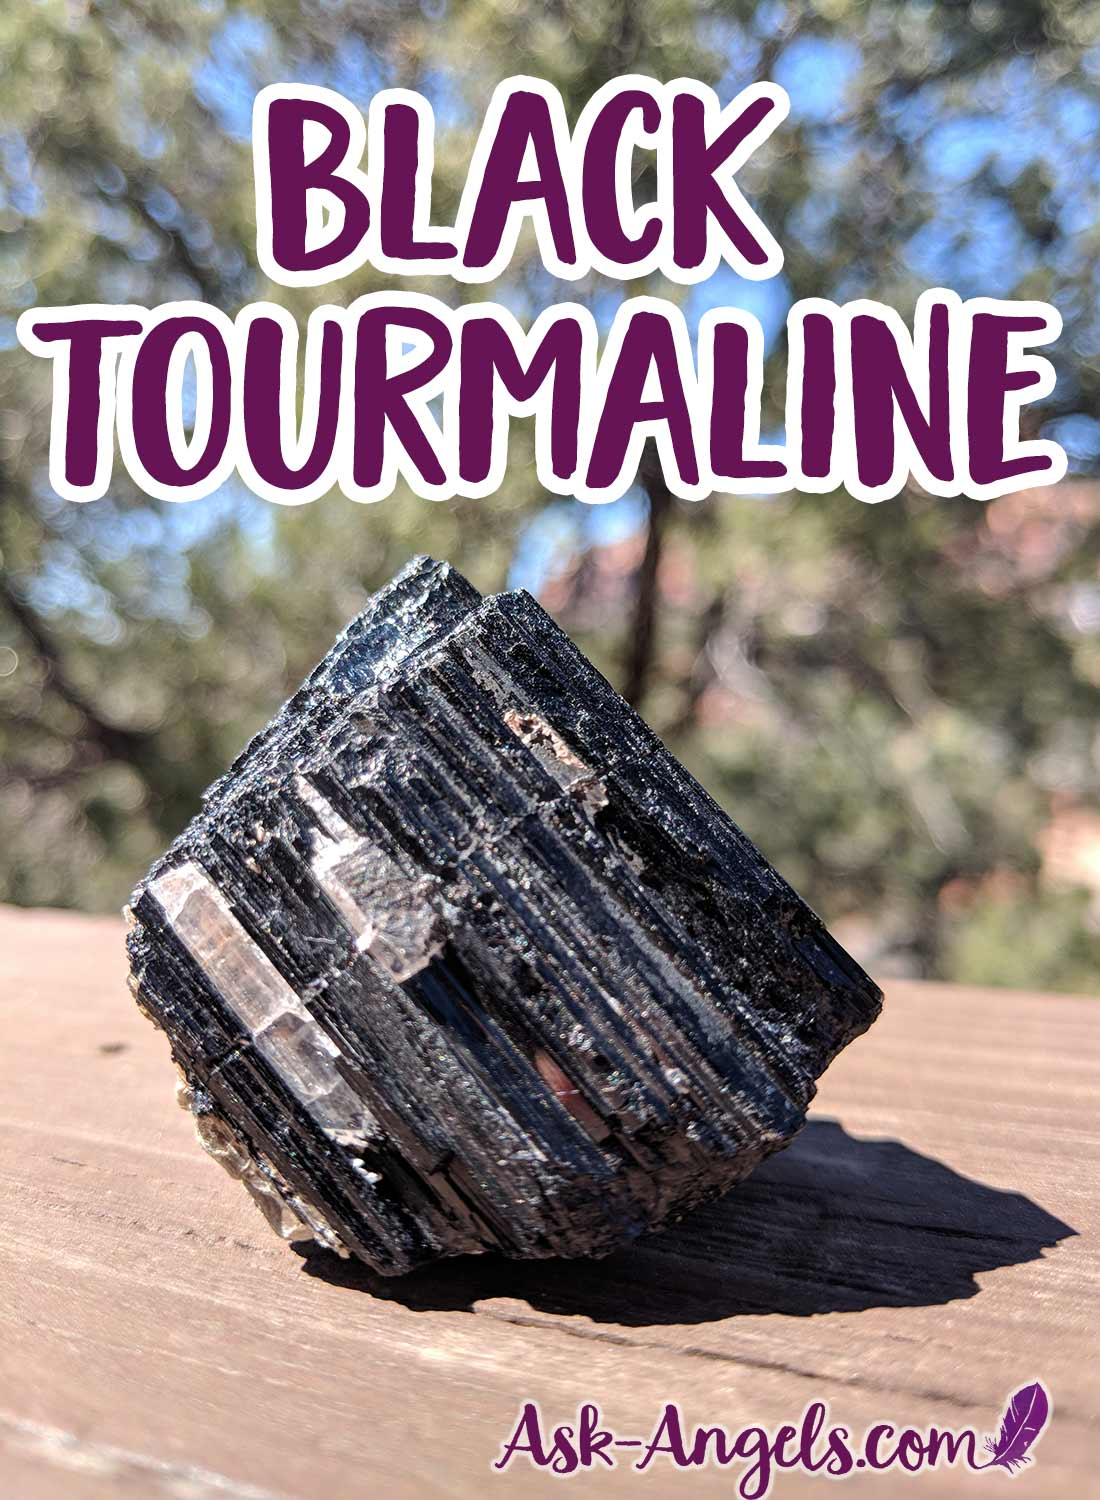 Black Tourmaline - Crystals for Protection